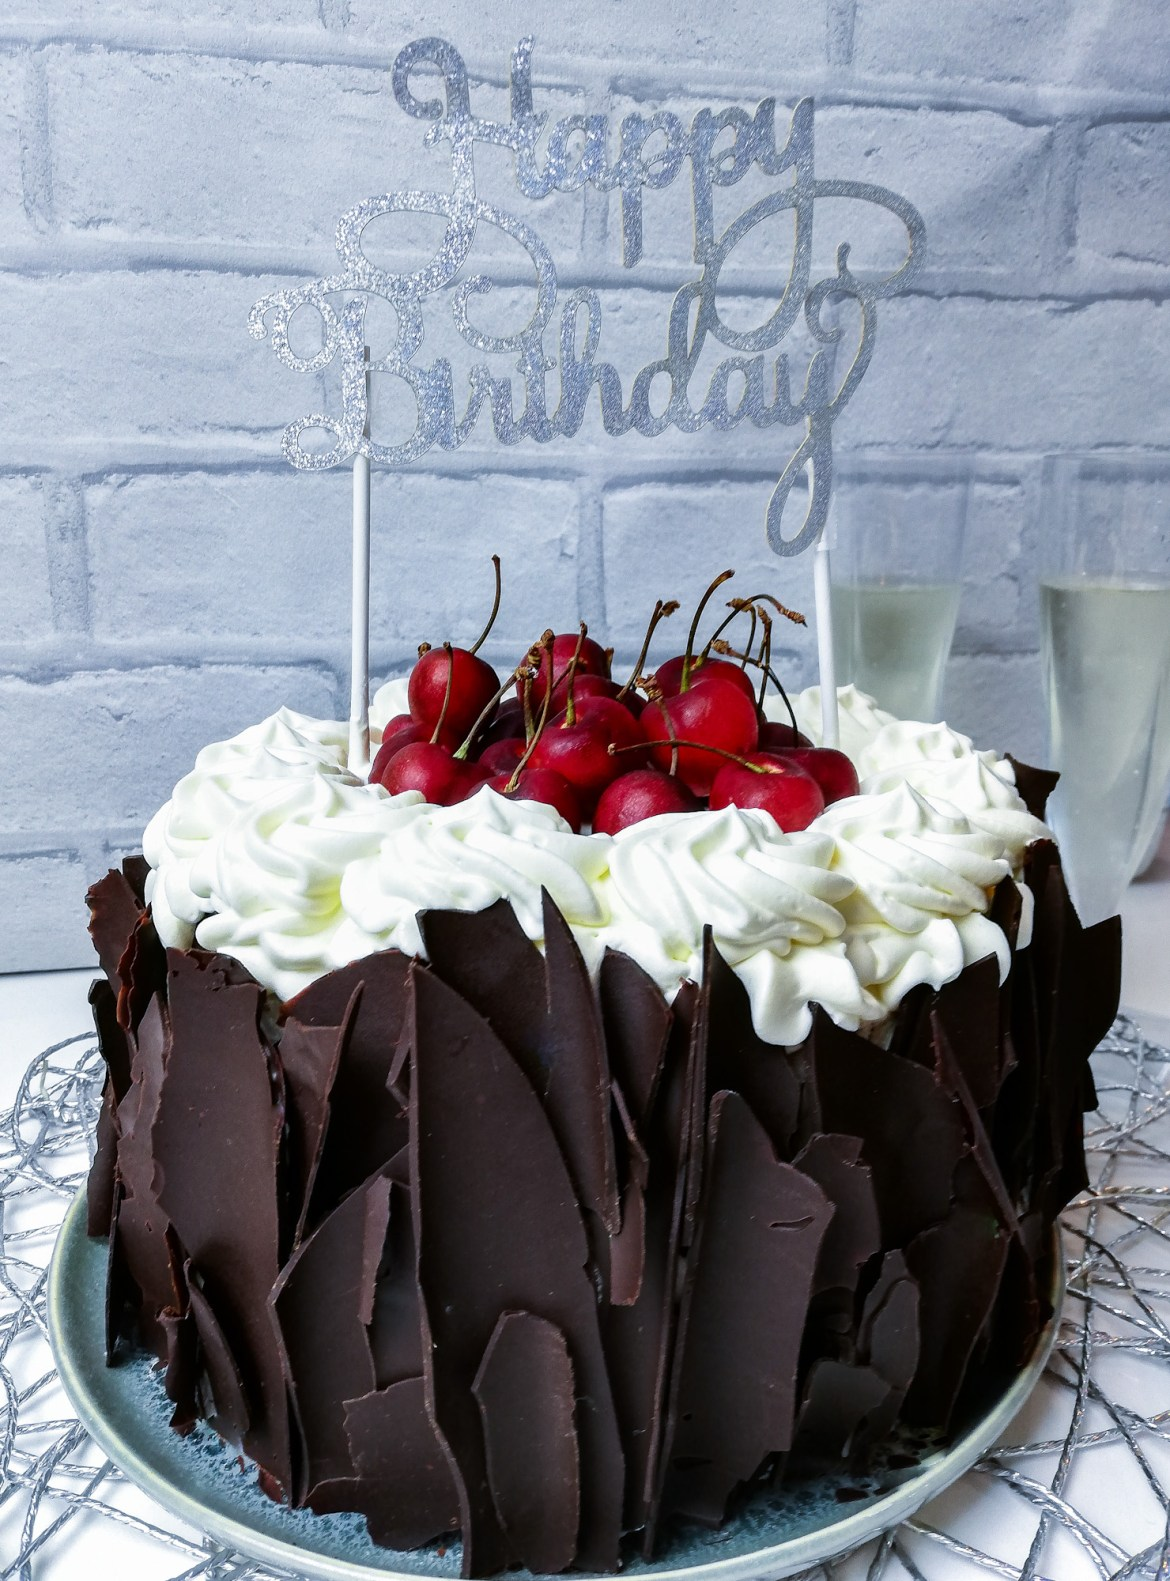 Indulgent, decadent and chocolatey, this vegan black forest cake (or gateau) is a complete plant-based version of the scrumptious German dessert. #vegan #plantbased #chocolate #blackforest #cakes #chocolate #cherries #maraschino #kirsh #temperedchocolate